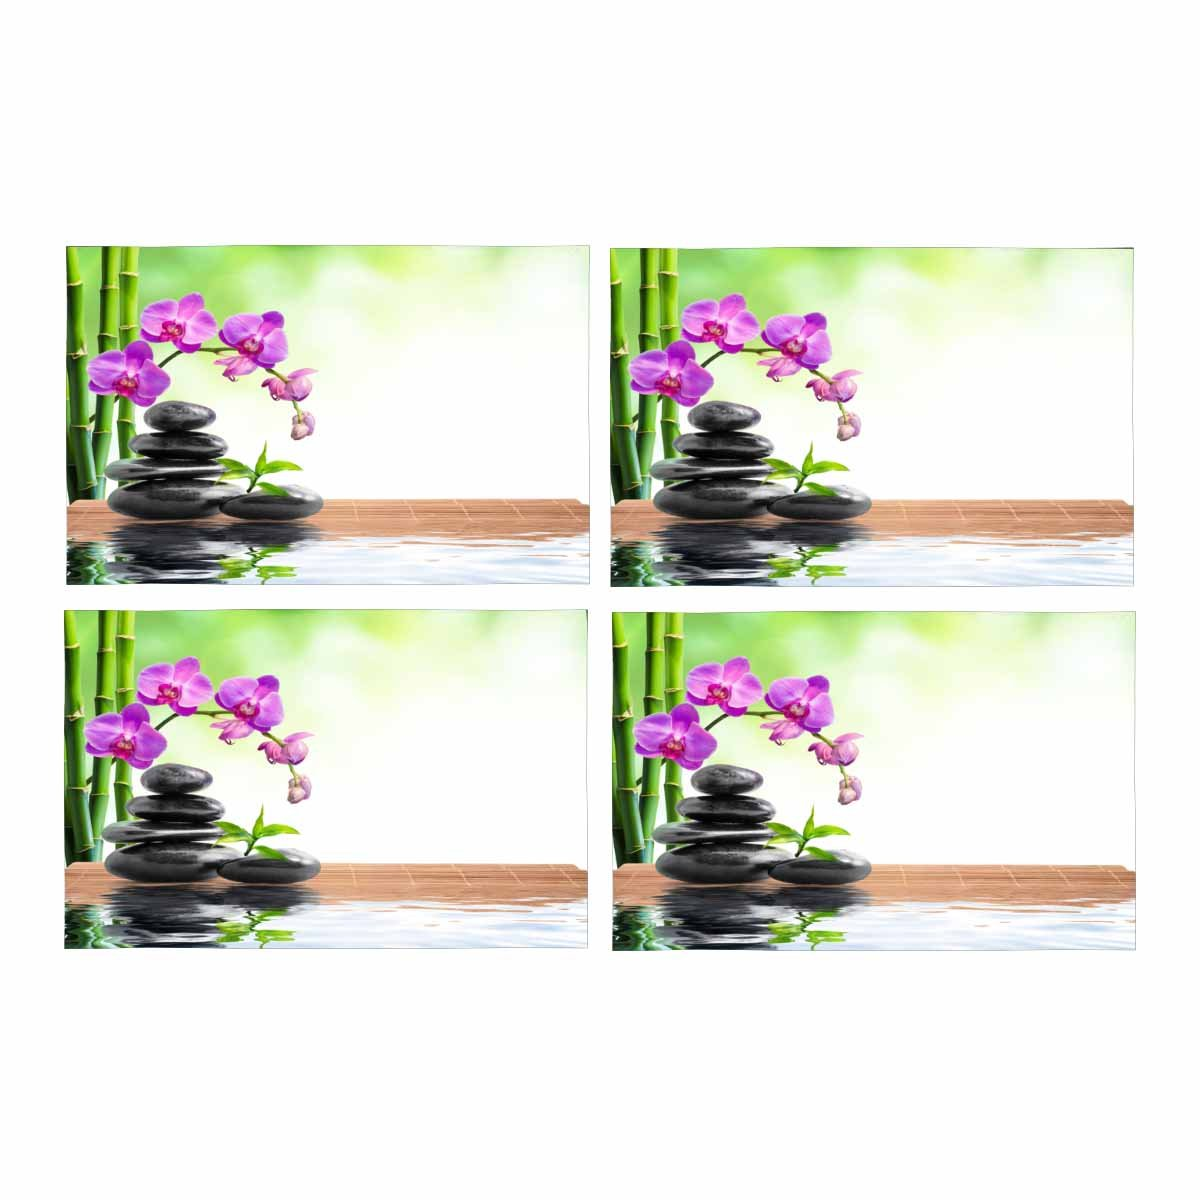 InterestPrint Spa Bamboo Orchids Water Placemat Table Mats Set of 4, Heat Resistant Place Mat for Dining Table Restaurant Home Kitchen Decor 12x18